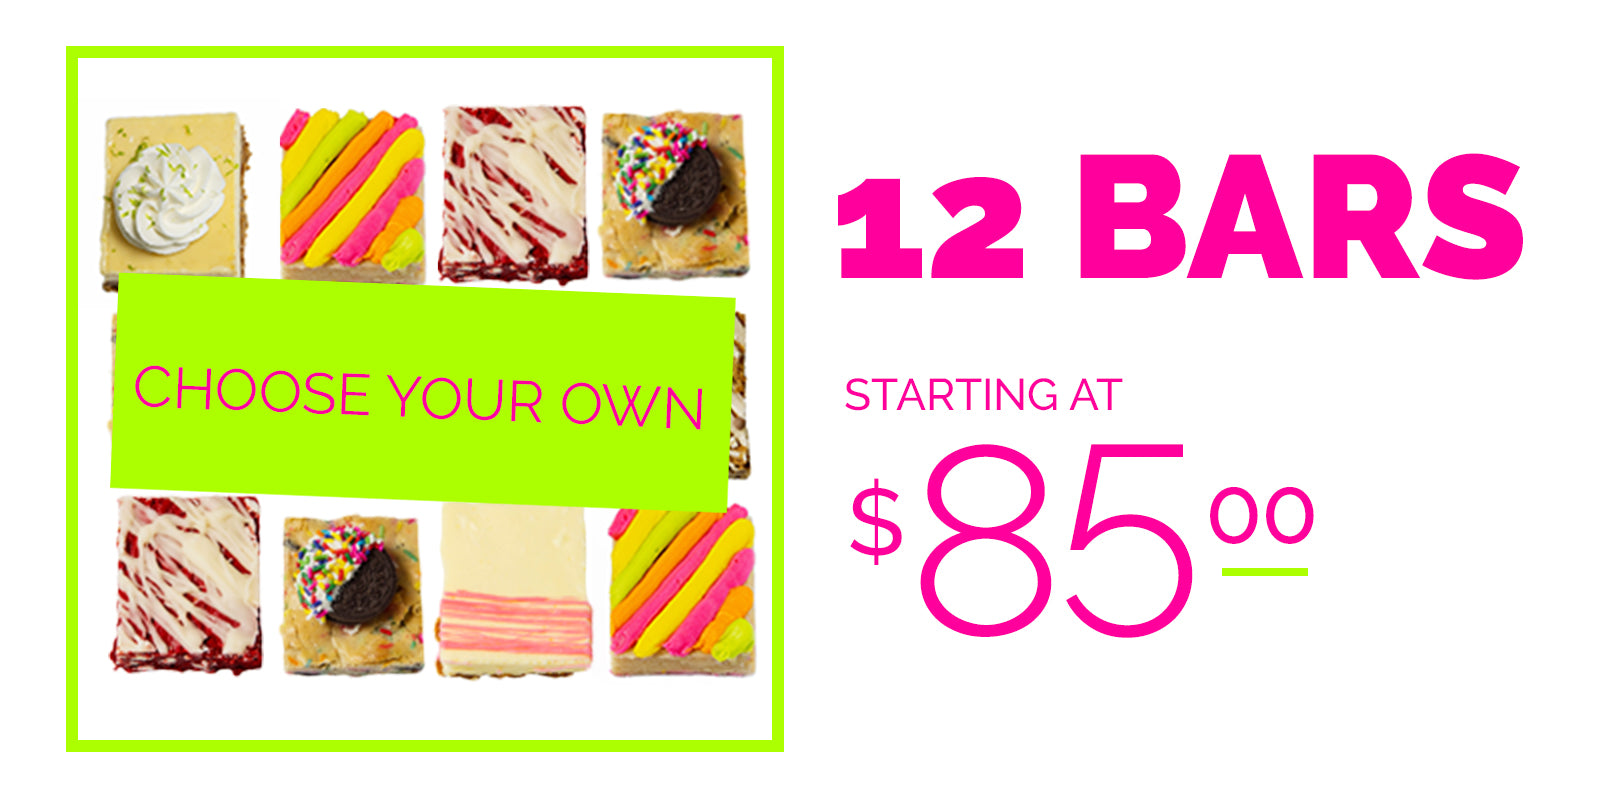 choose your own 12 bars starting at $85